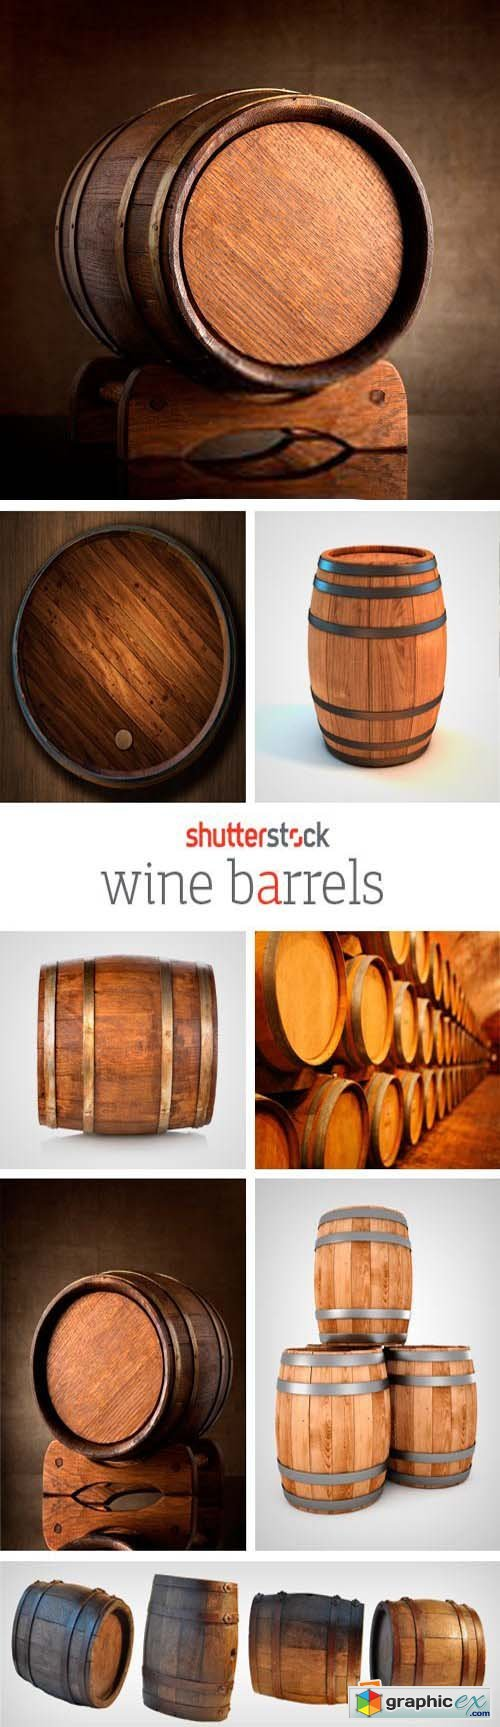 Amazing SS - Wine Barrels, 25xJPGs